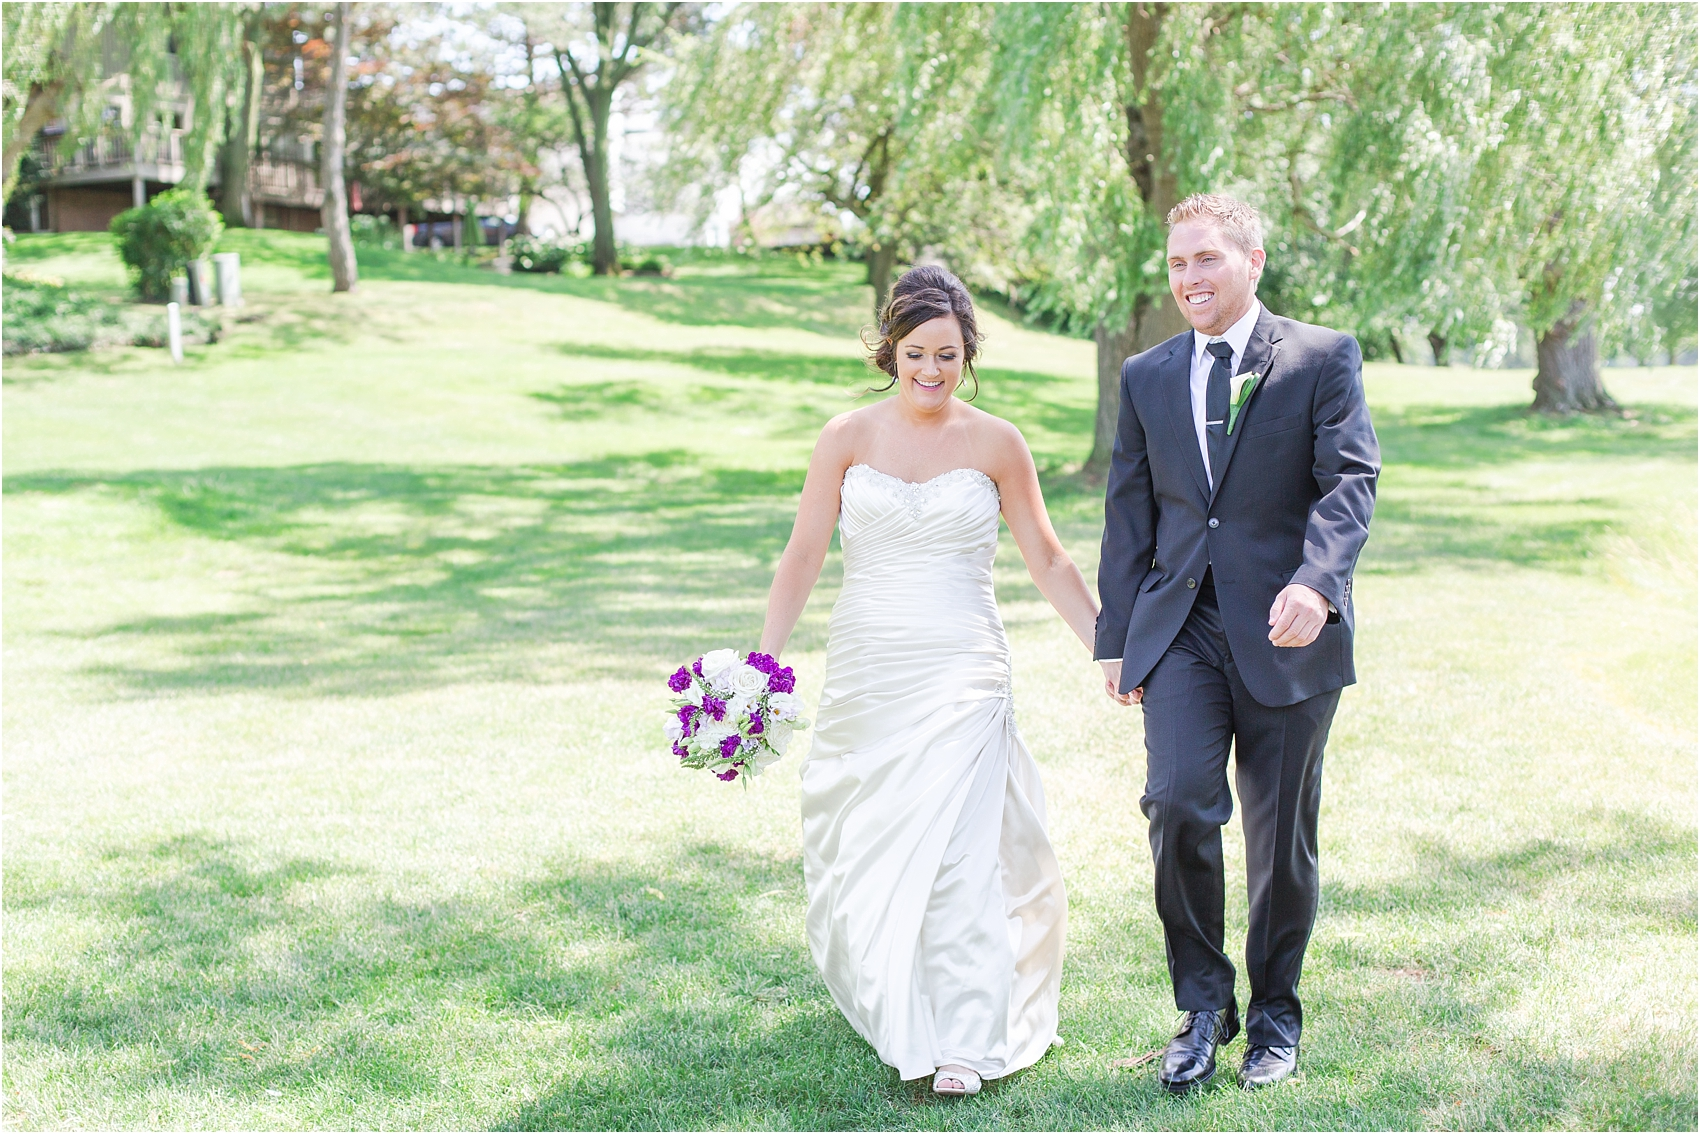 classic-wedding-photos-at-great-oaks-country-club-in-rochester-hills-mi-by-courtney-carolyn-photography_0041.jpg